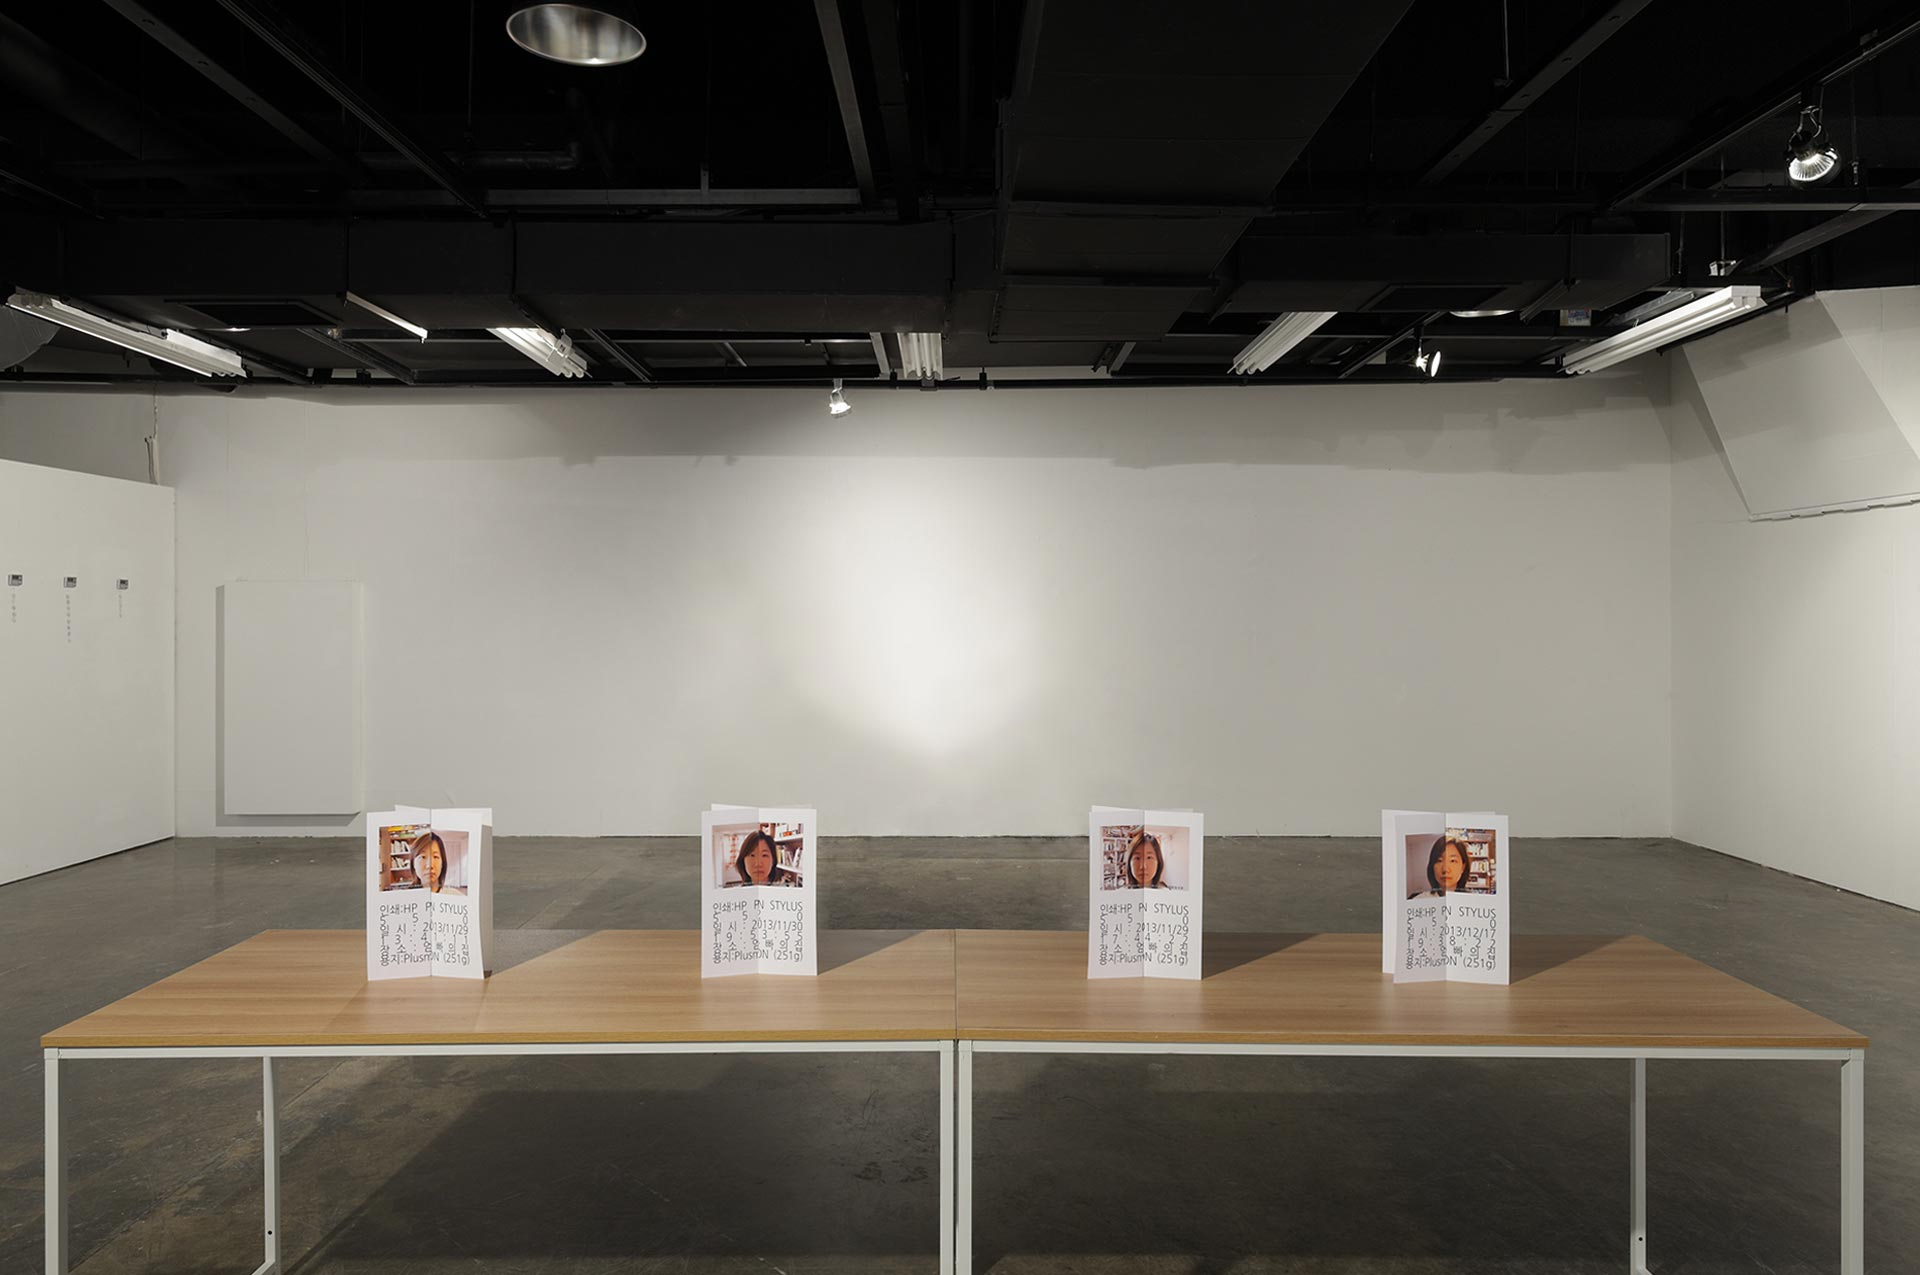 7-One person Two places(install).jpg